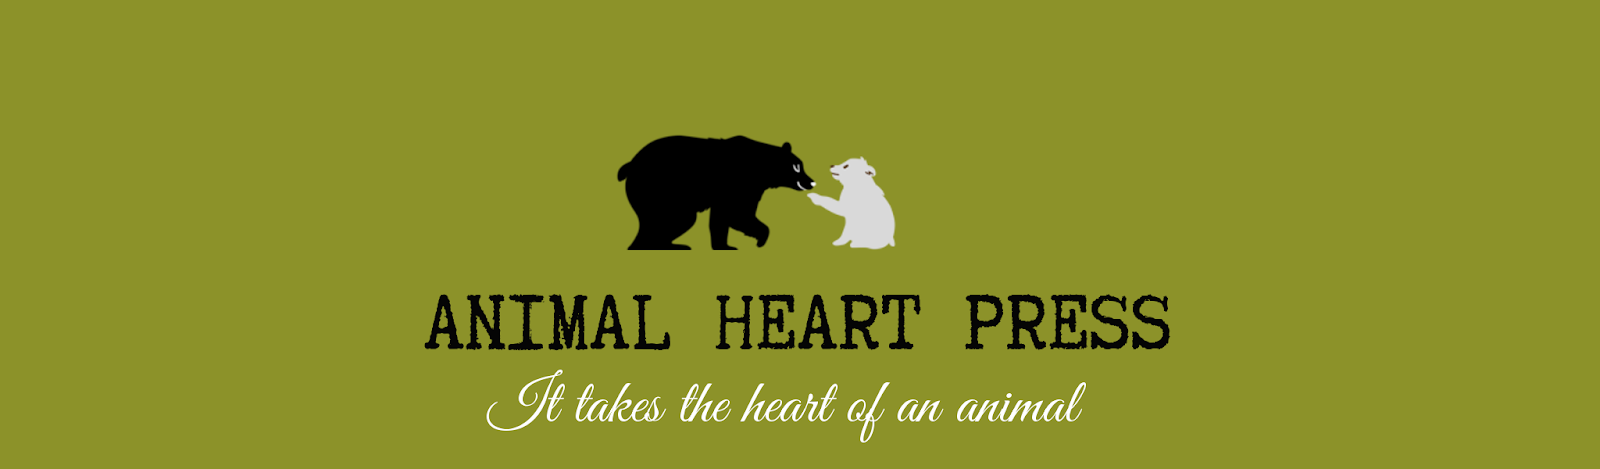 Animal Heart Press